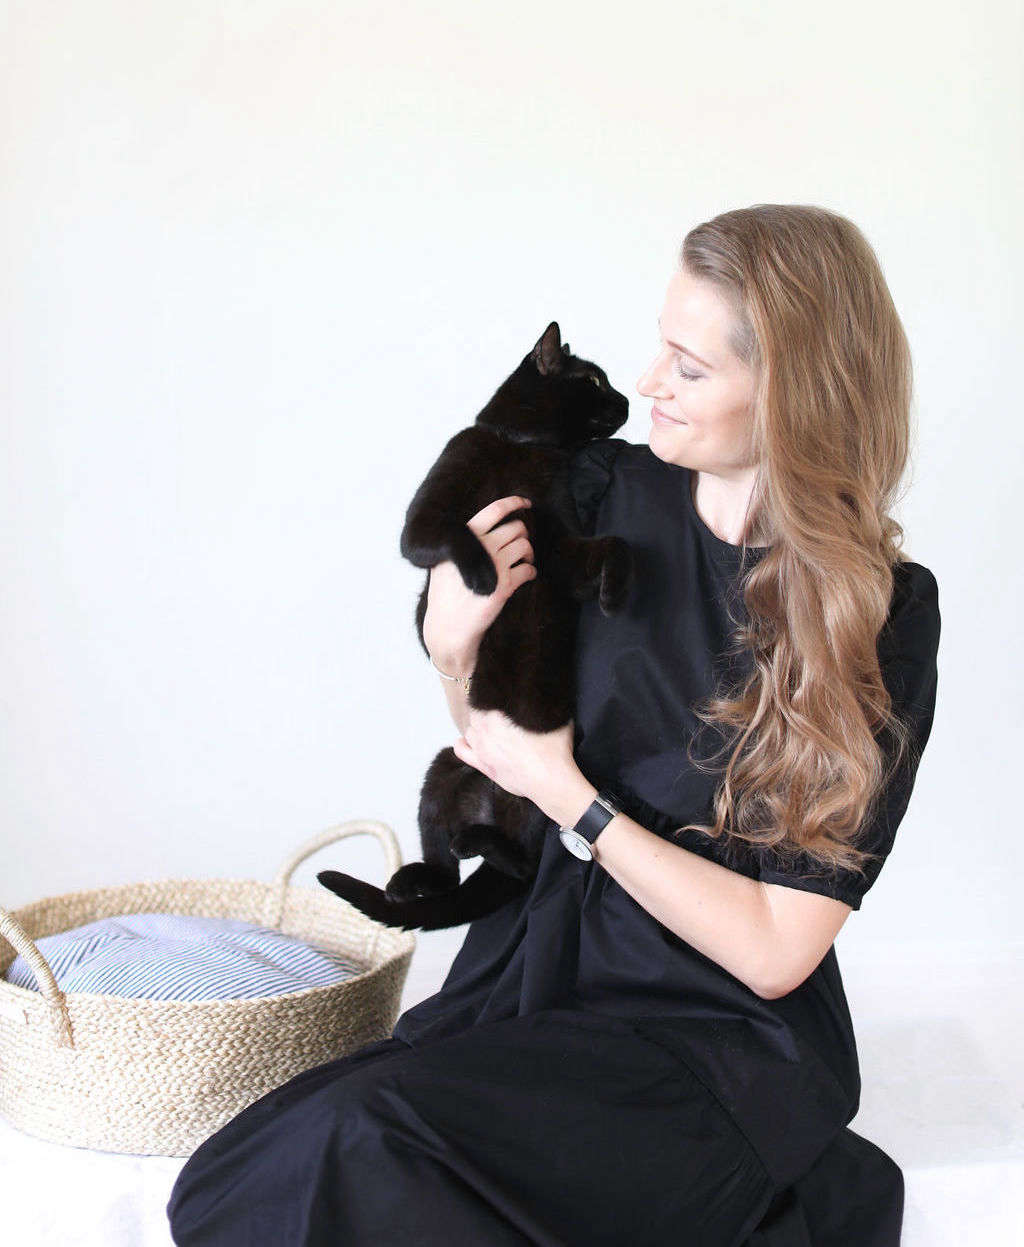 Remodelista editor Meredith Swinehart and cat with Faunamade basket bed for pets